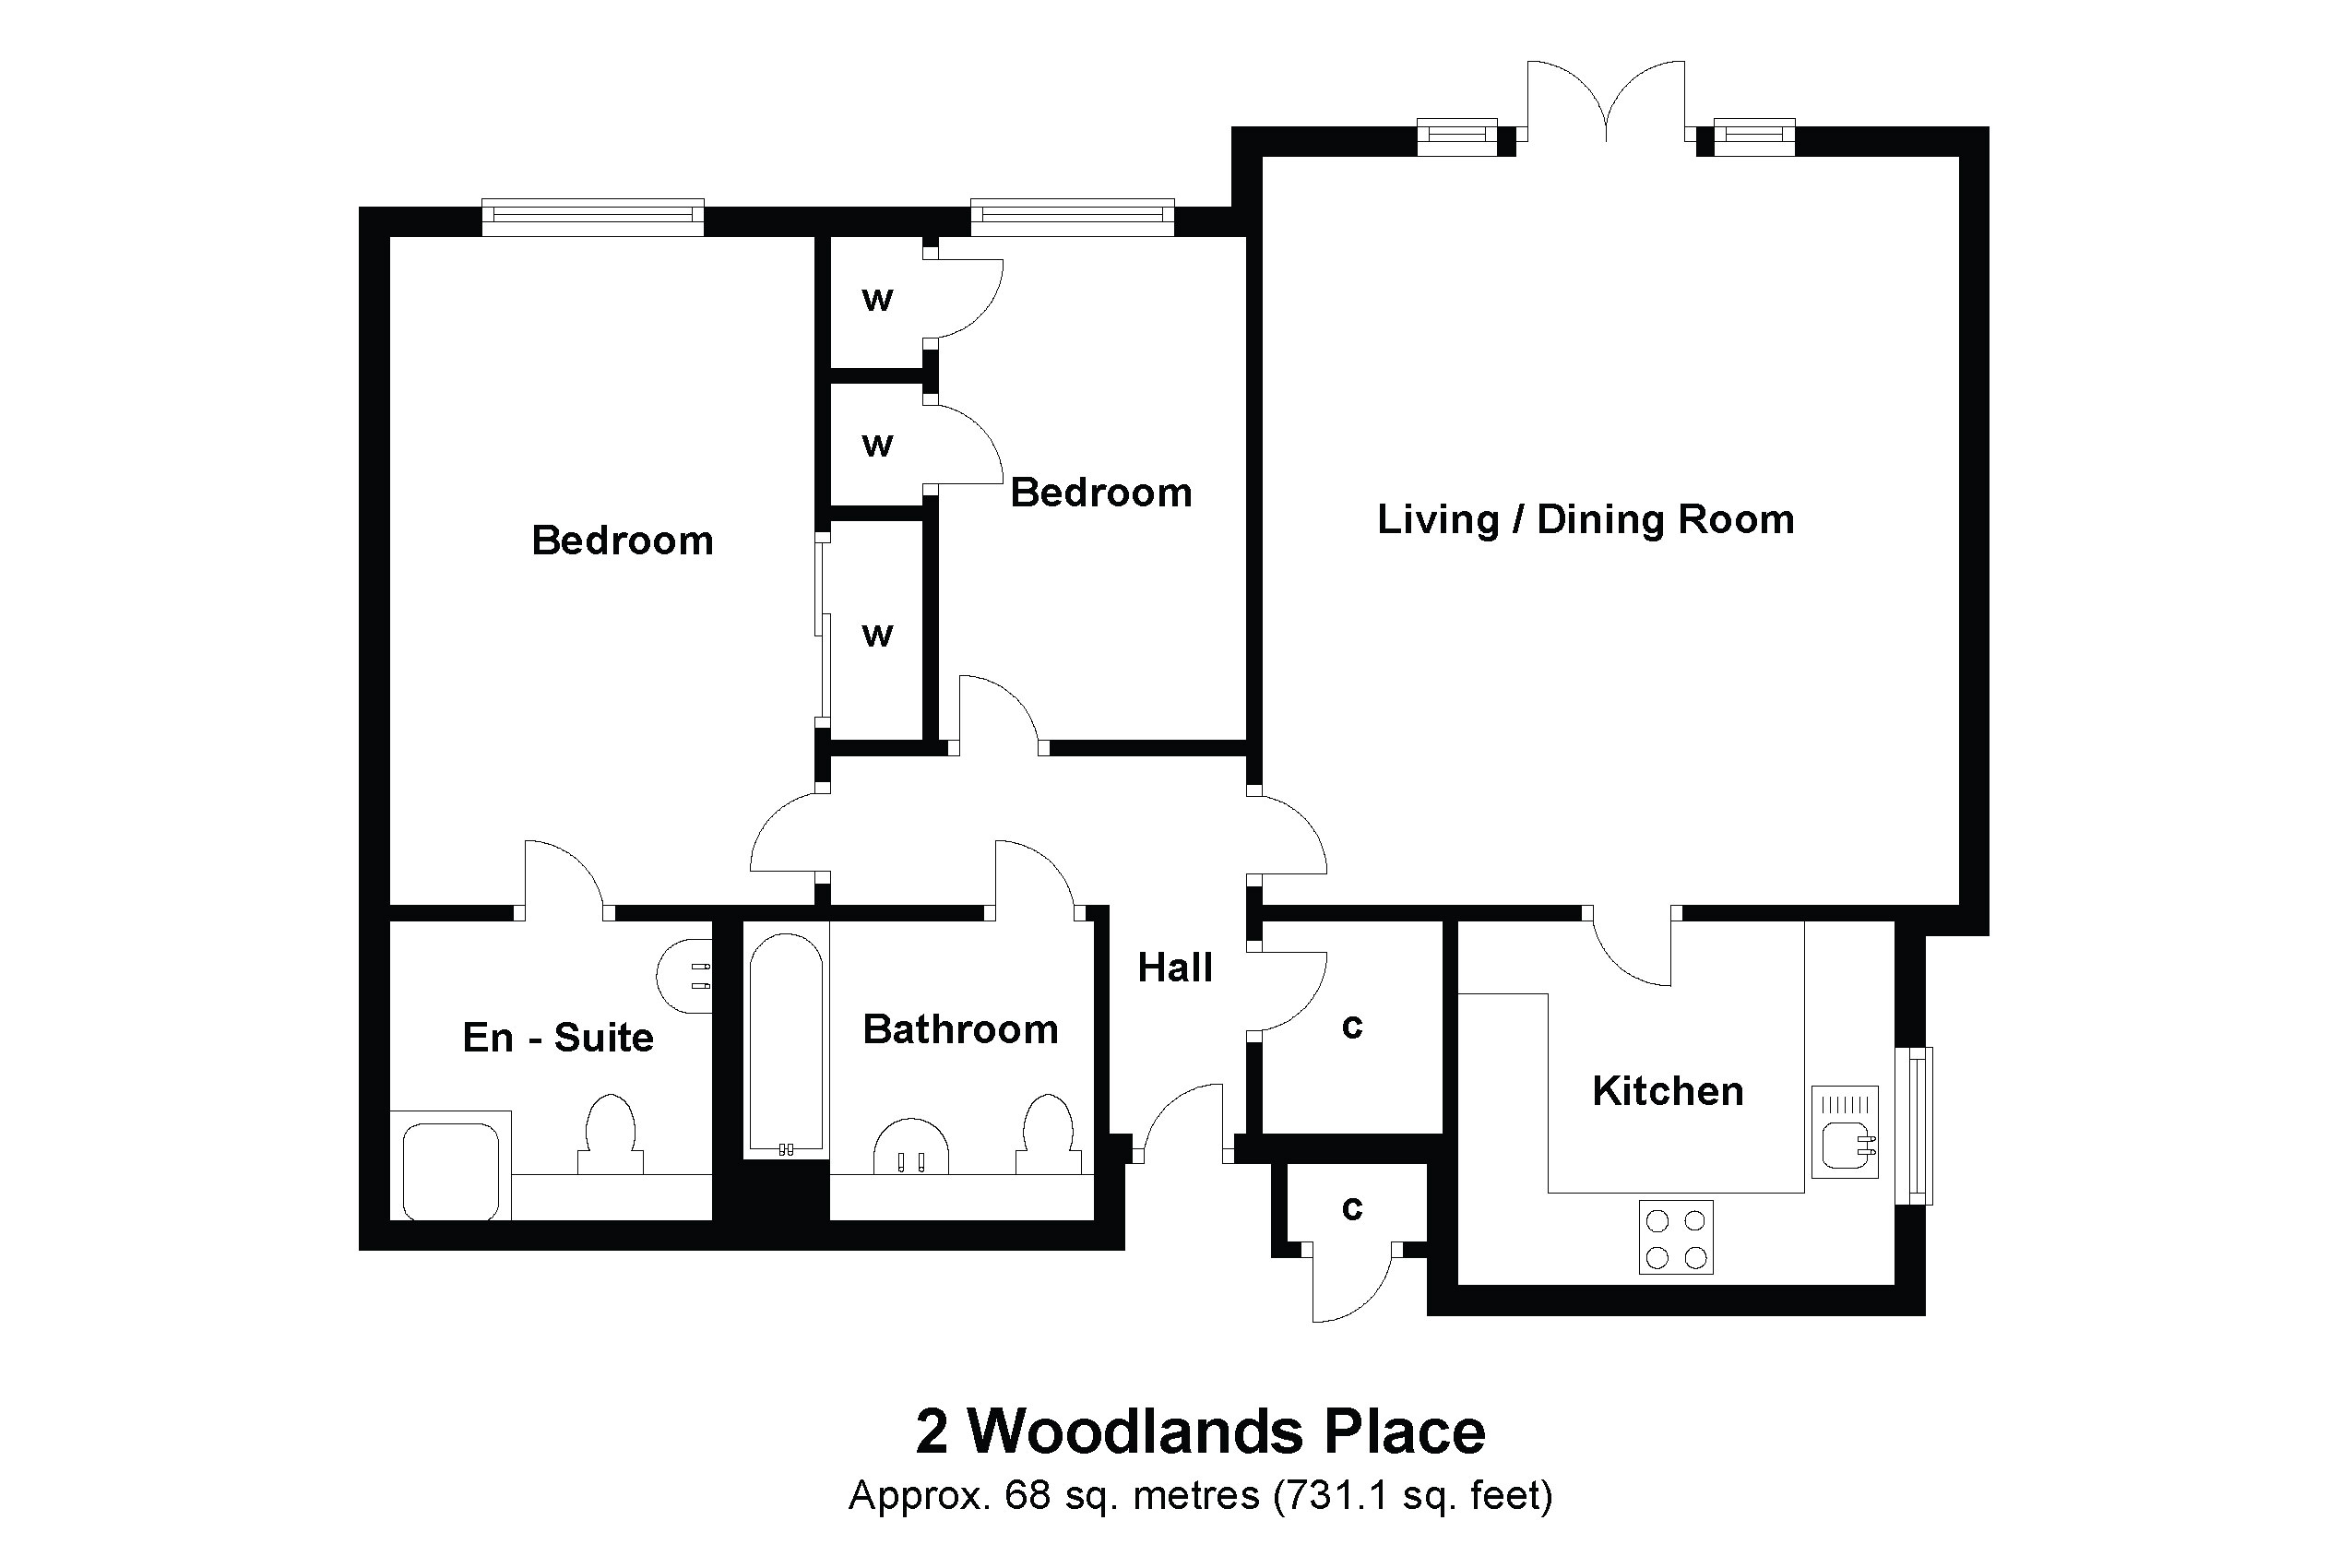 2 Woodland Place Floorplan